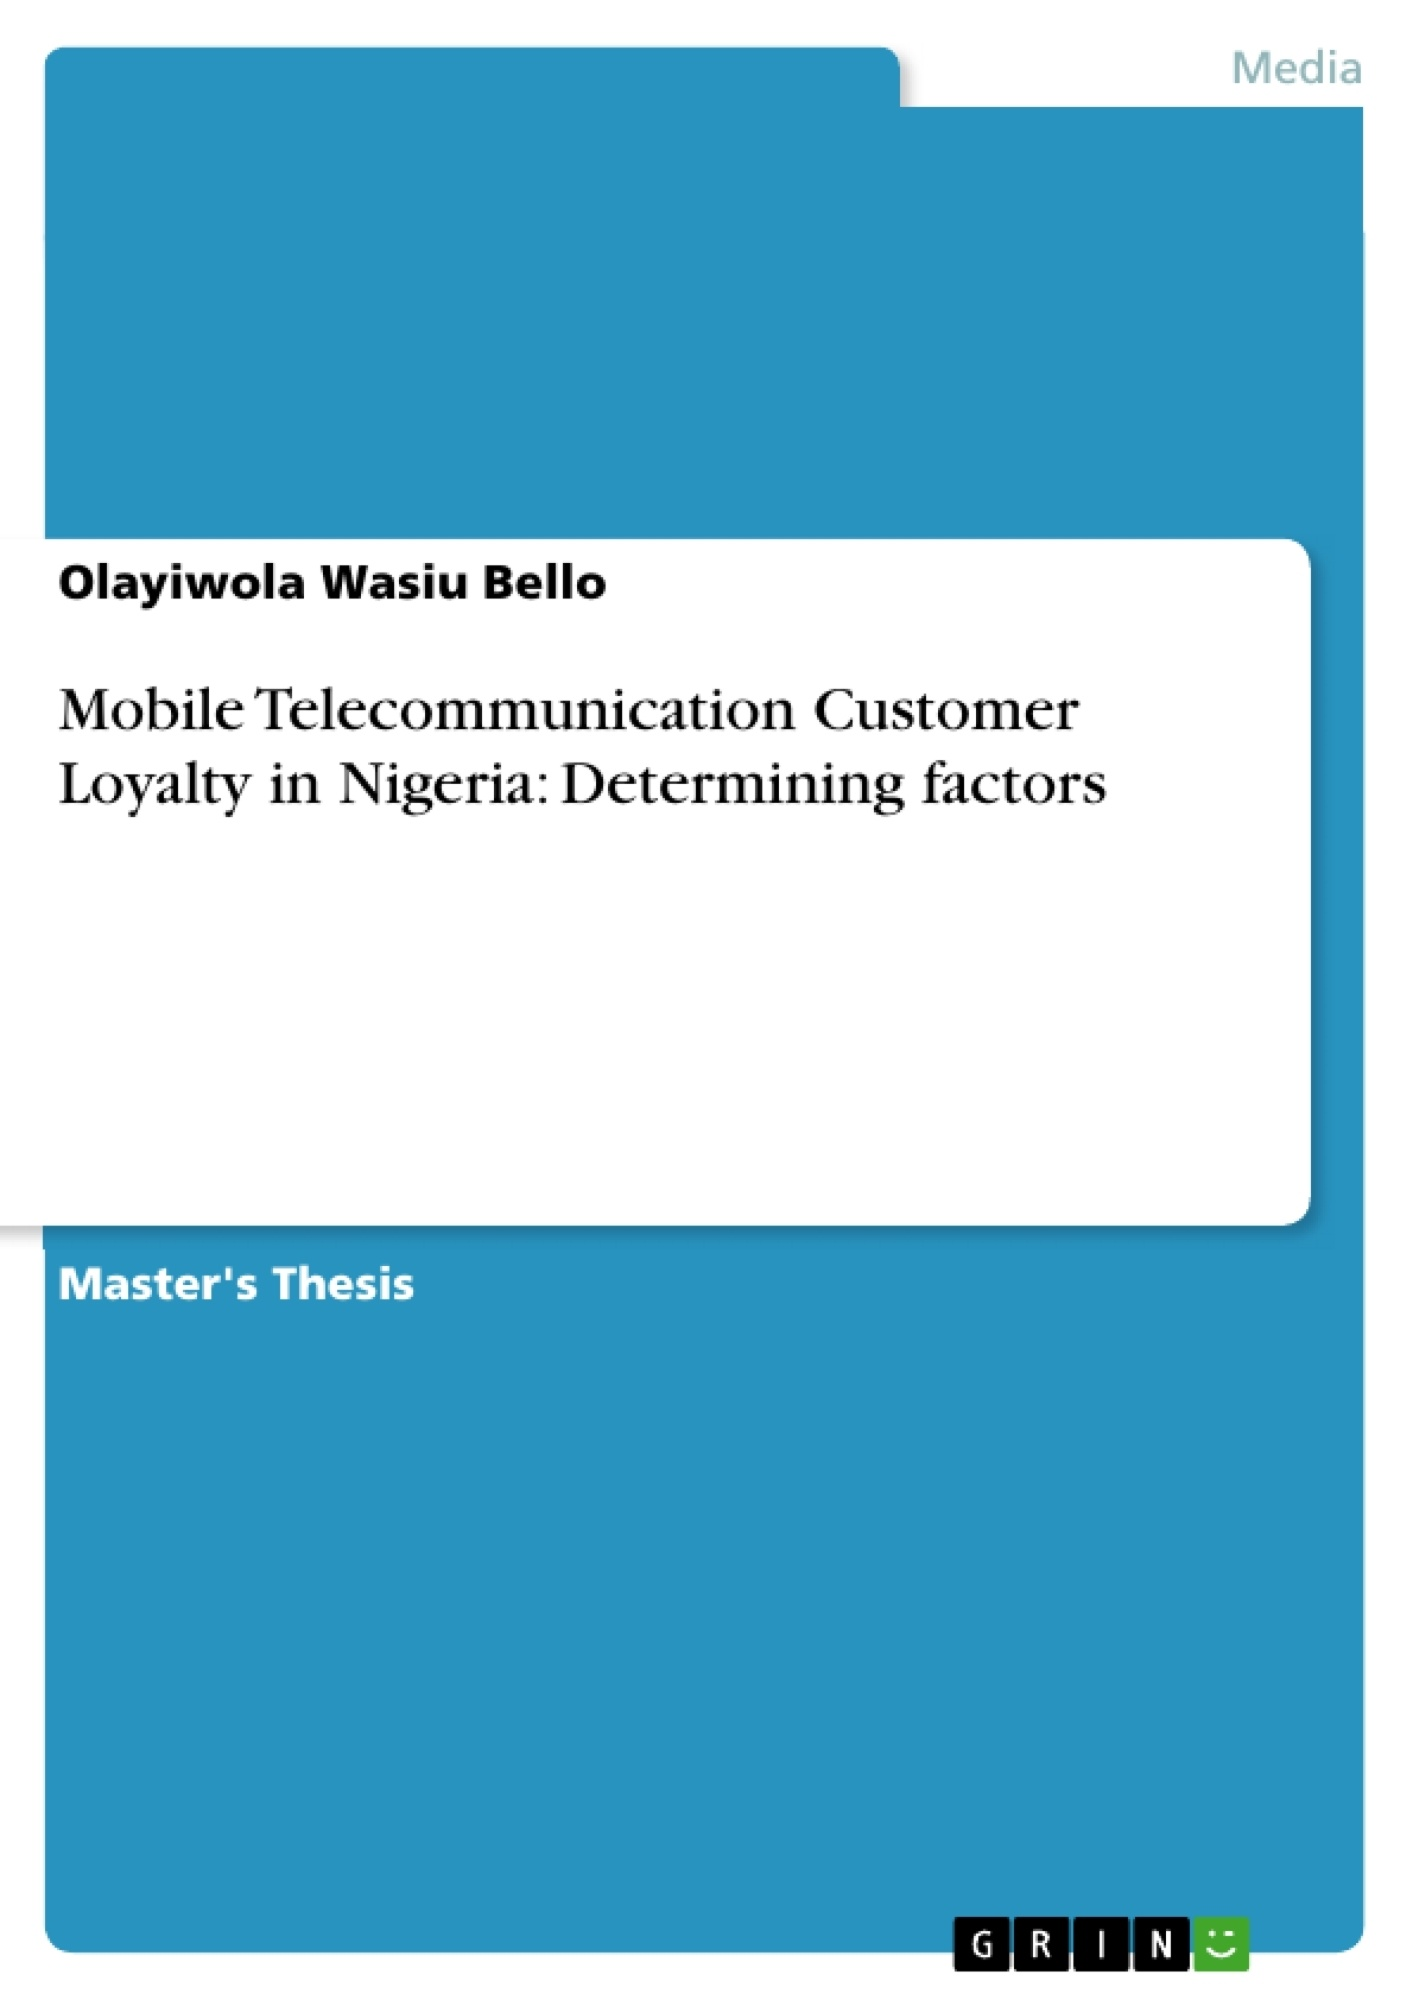 Title: Mobile Telecommunication Customer Loyalty in Nigeria: Determining factors